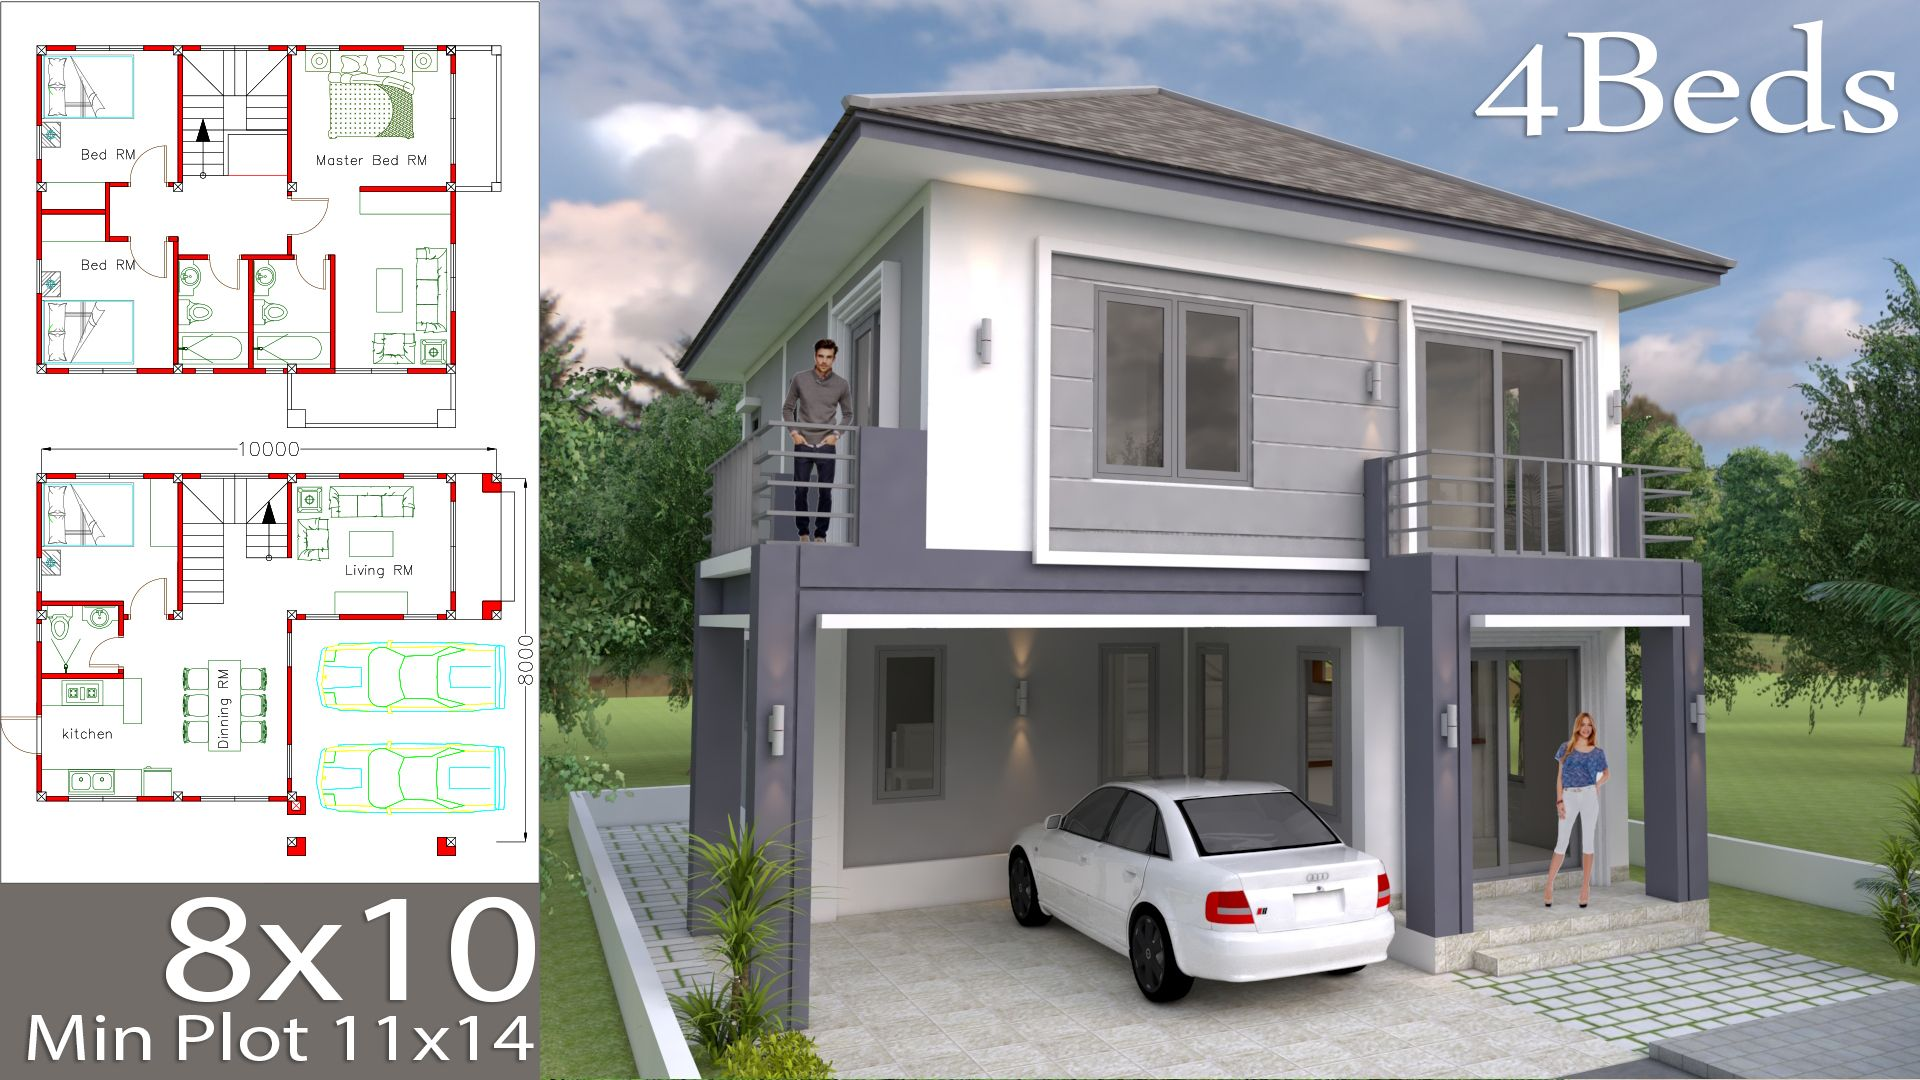 House Plans 8x10m With 4 Bedrooms House Plans 3d In 2020